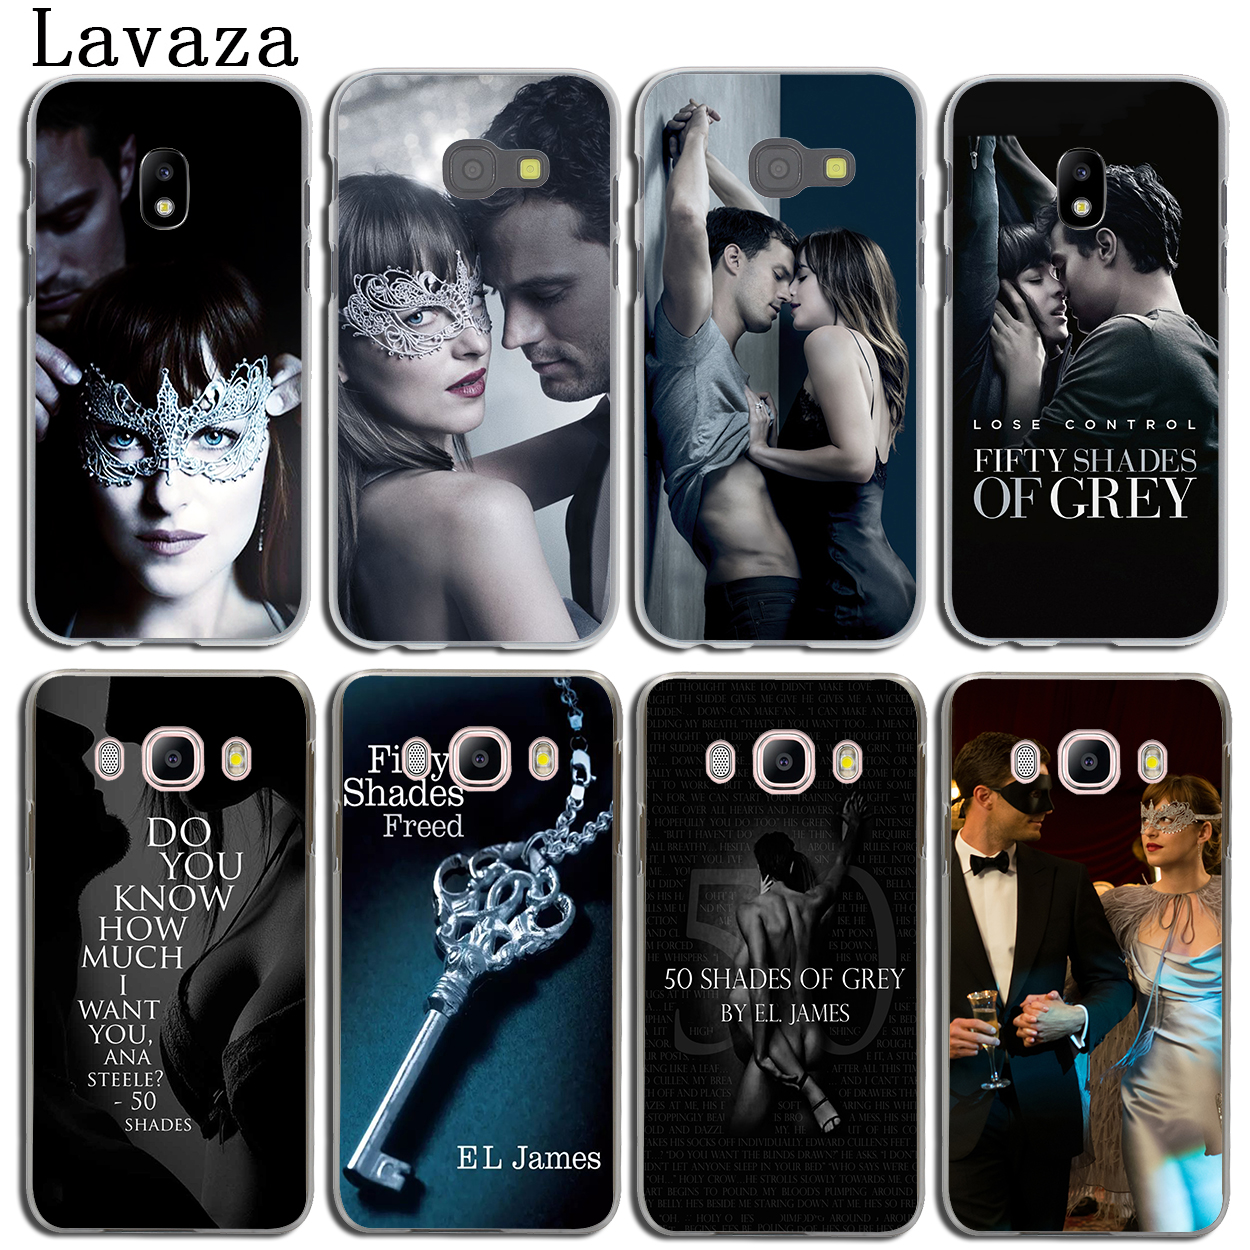 Lavaza Fifty Shades Darker of grey freed Phone Case for Samsung Galaxy J3 J1 J2 J7 J5 2015 2016 2017 J2 Pro Ace J7 J3 J5 Prime ...